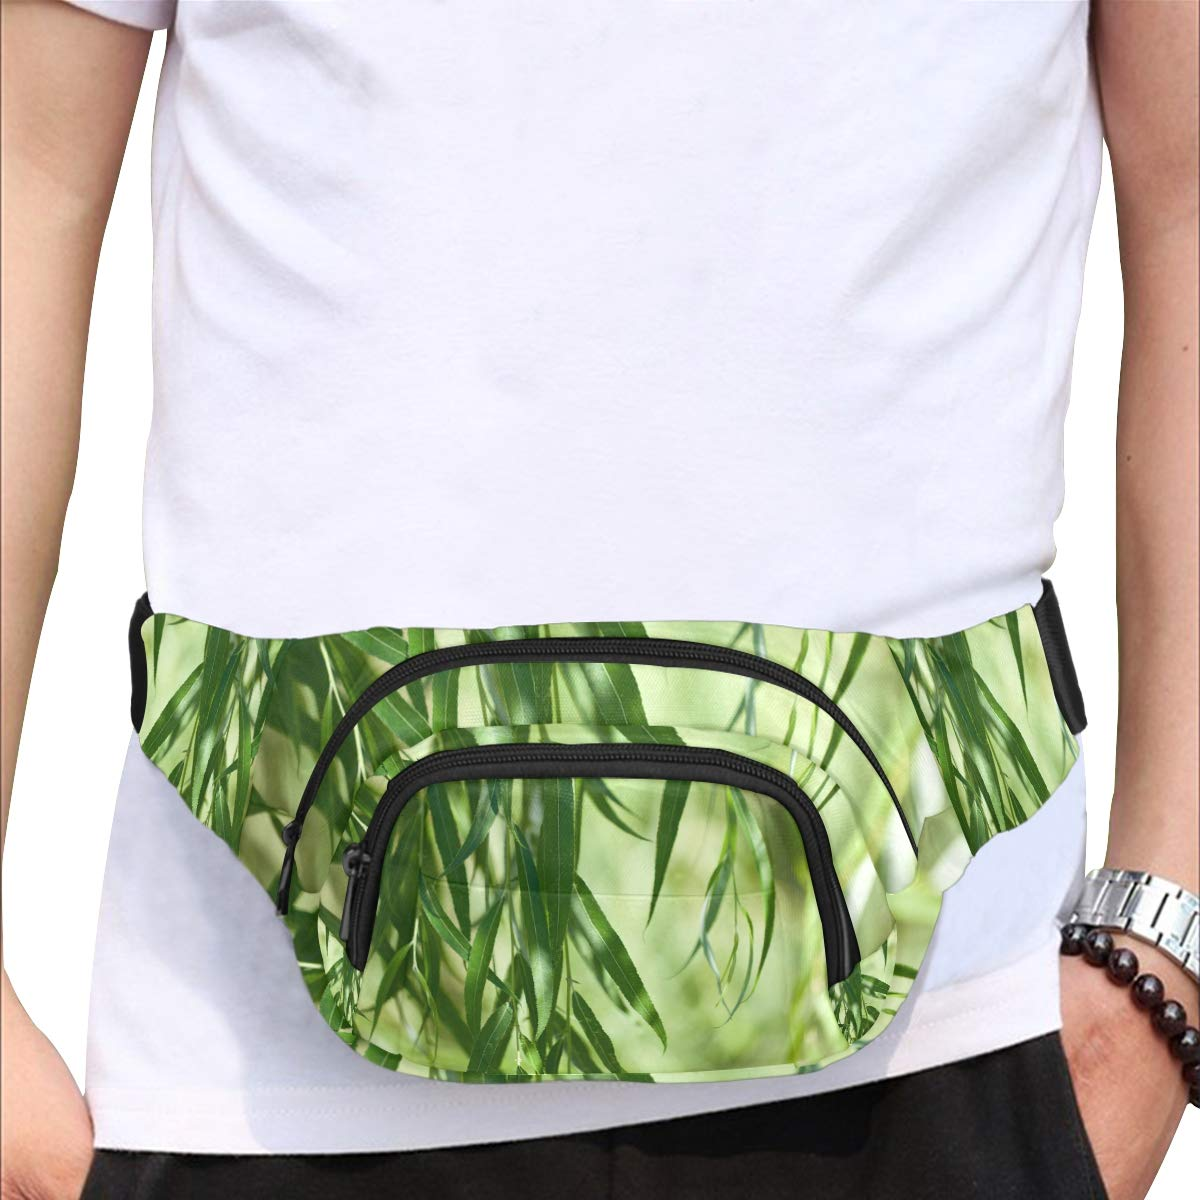 Green Willow Leaves In Spring Fenny Packs Waist Bags Adjustable Belt Waterproof Nylon Travel Running Sport Vacation Party For Men Women Boys Girls Kids